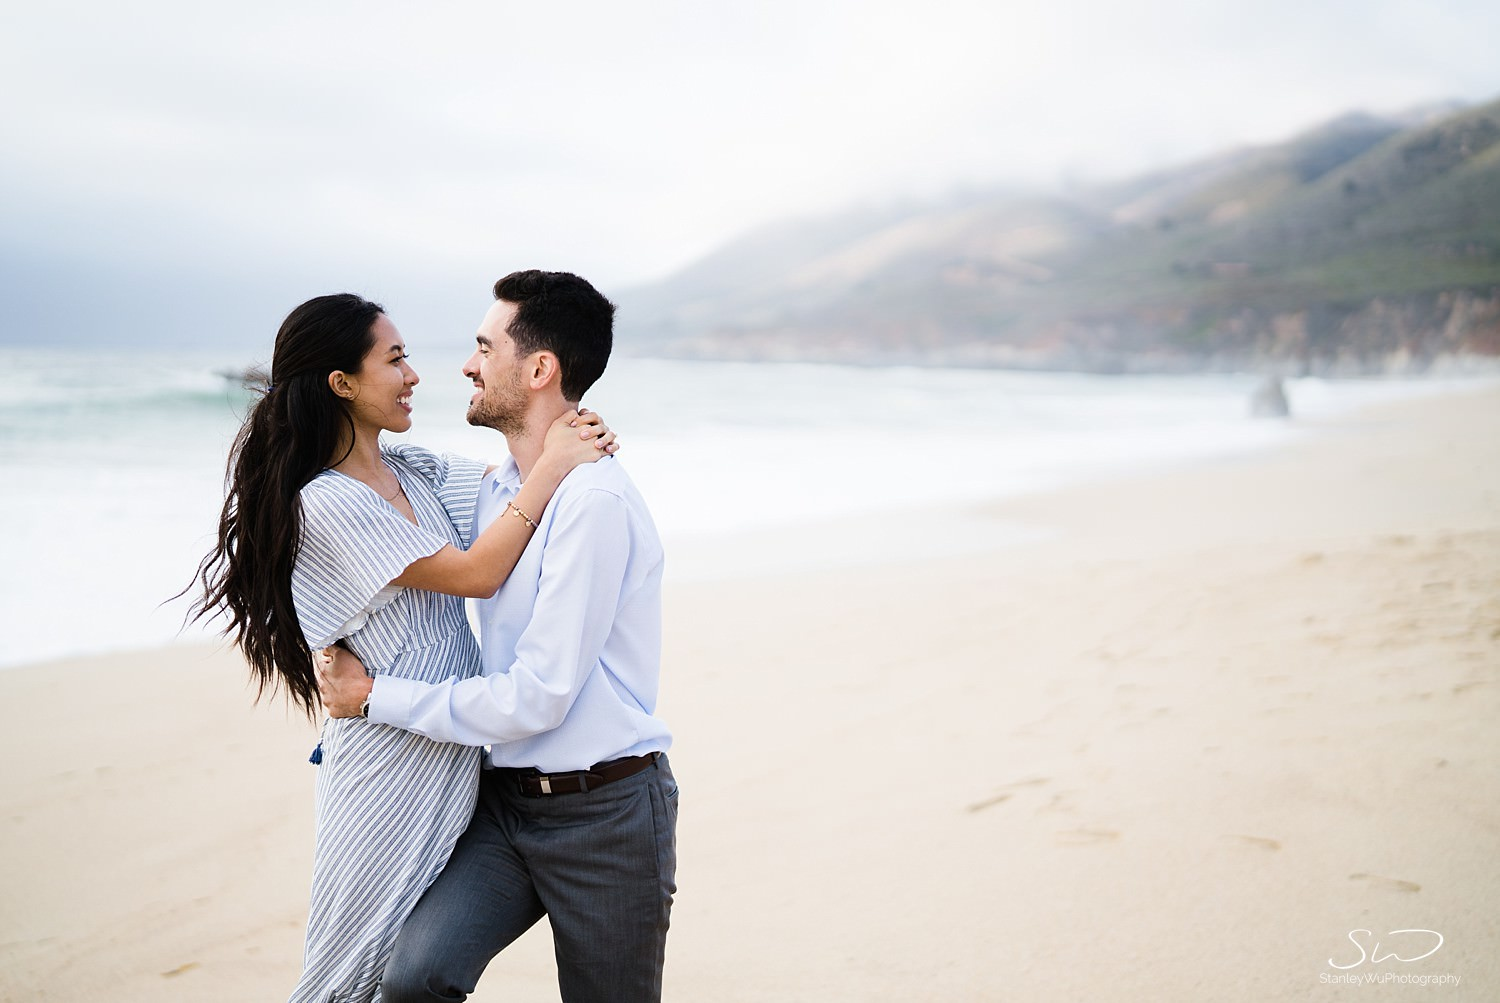 big-sur-travel-adventure-engagement-session_0048.jpg